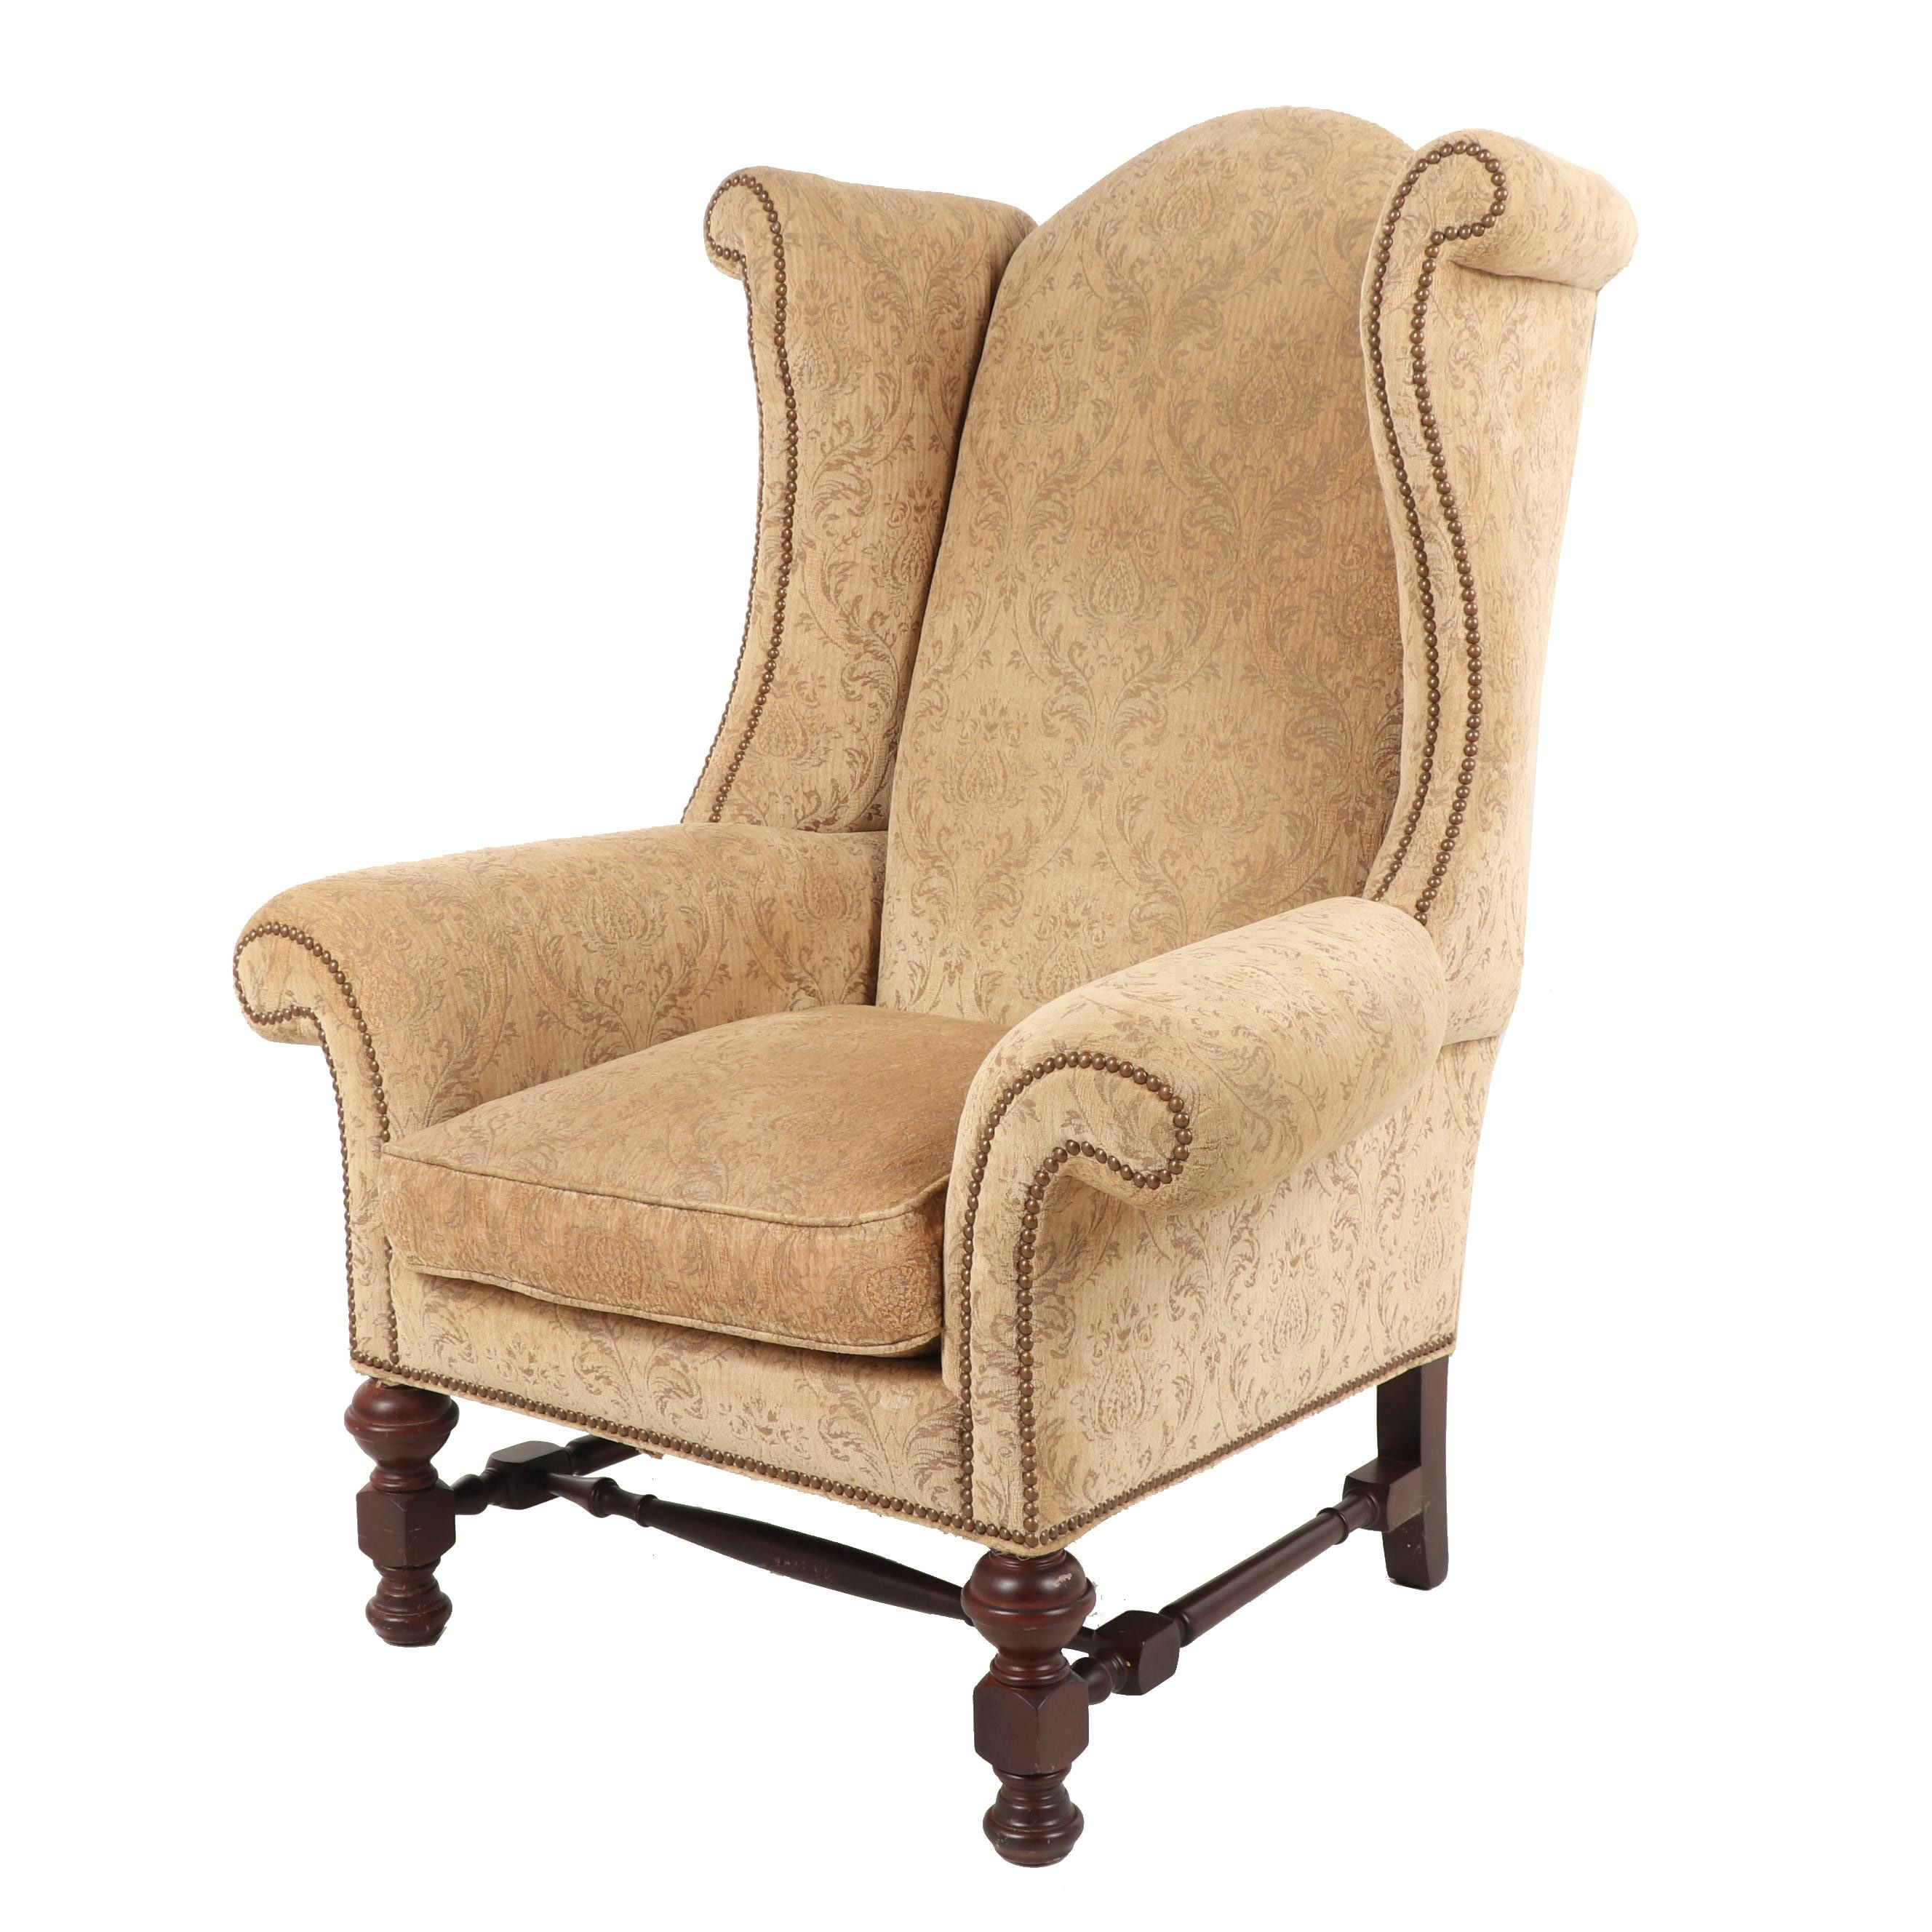 Sherrill Brocade Upholstered Armchair, Contemporary